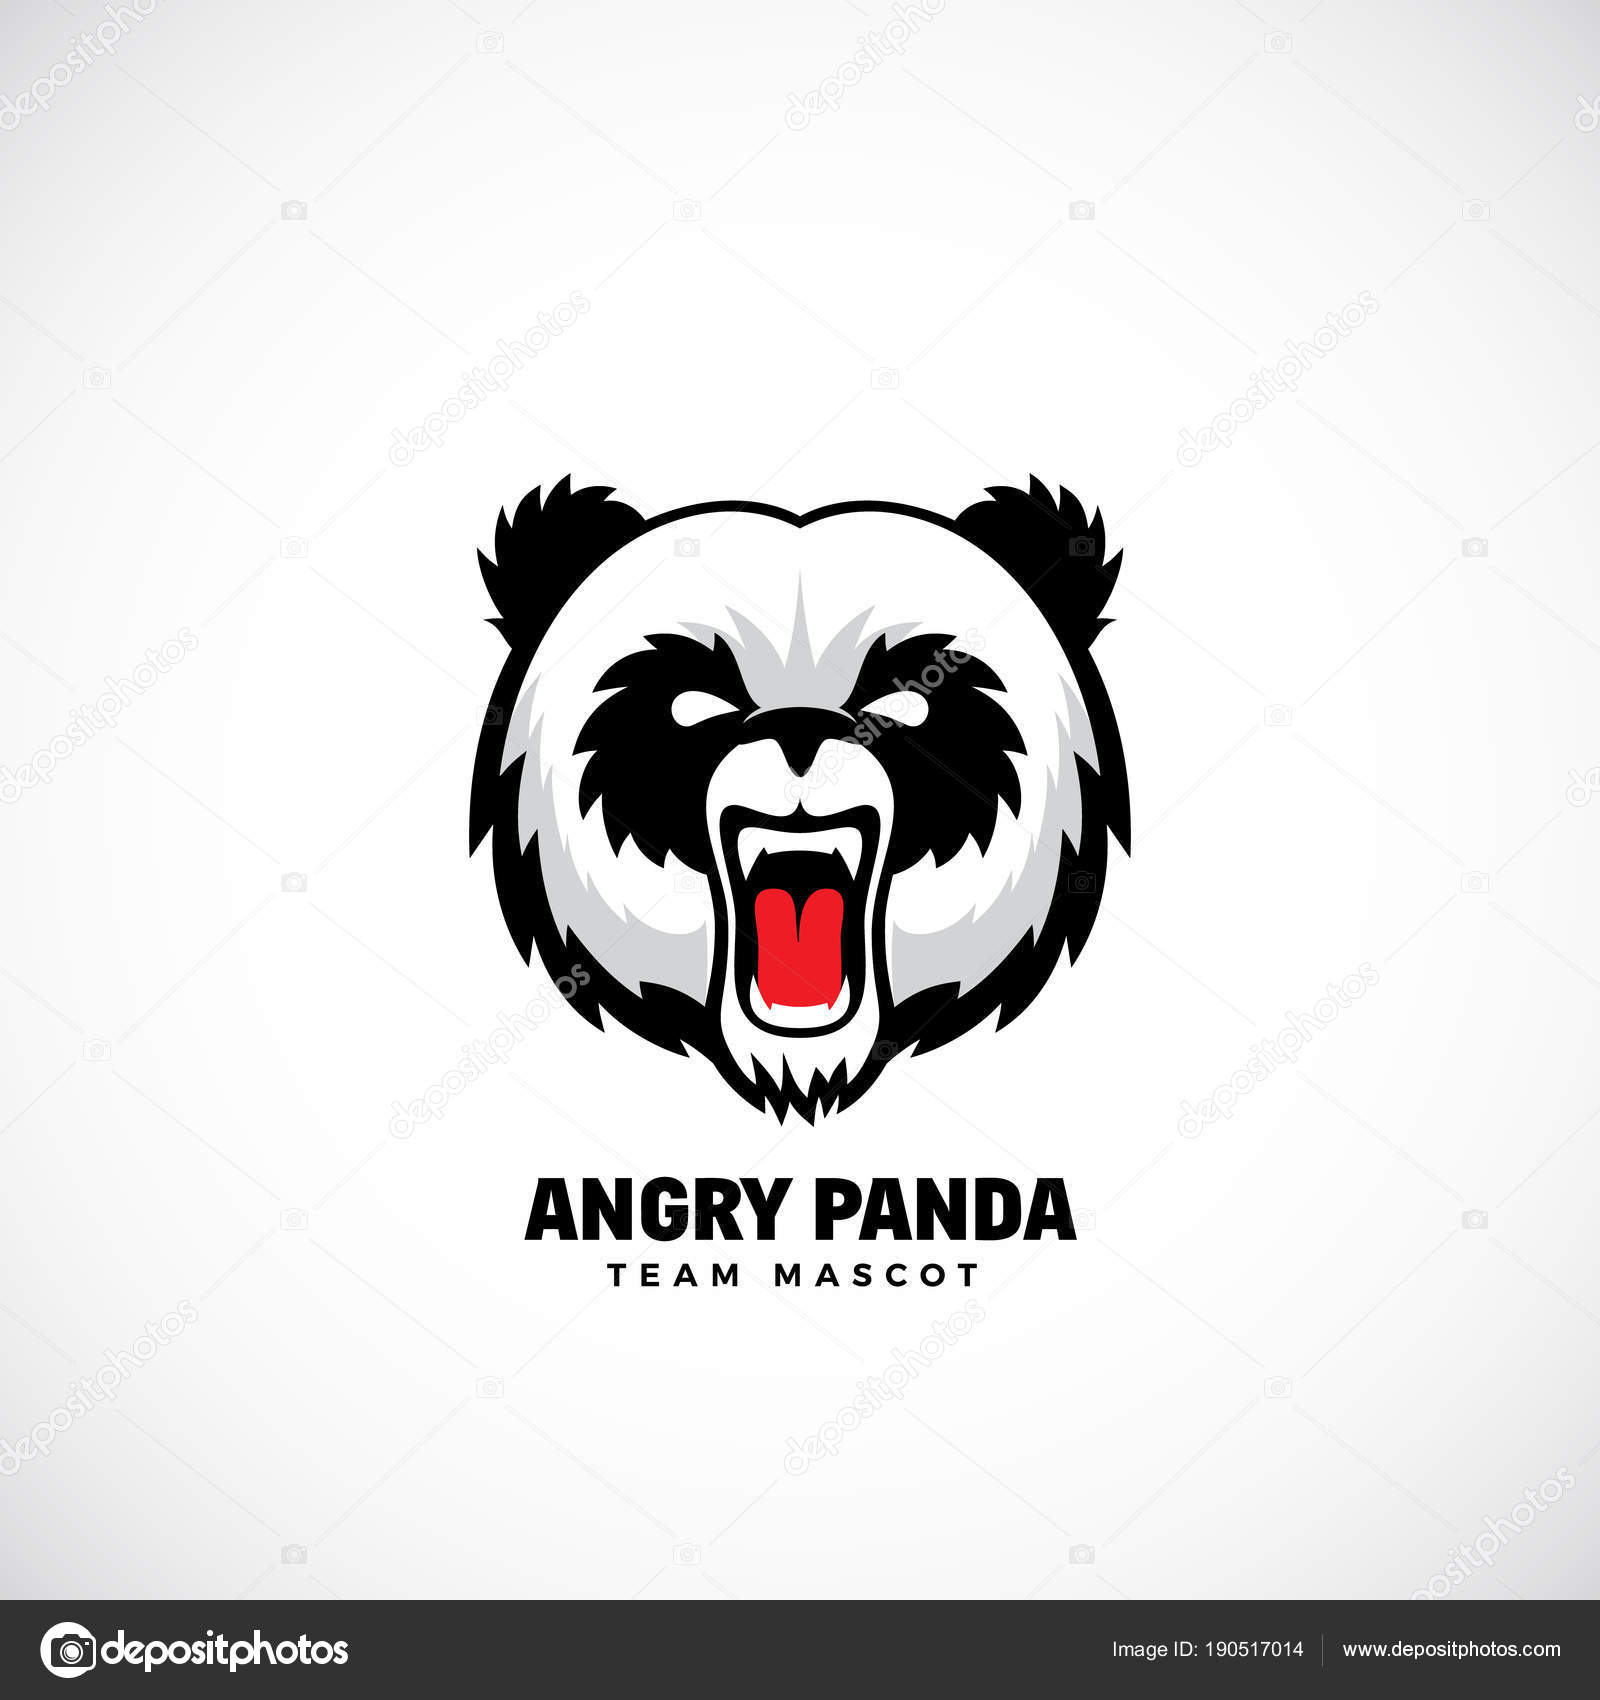 Angry Panda Abstract Vector Team Mascot, Label or Logo Template ...